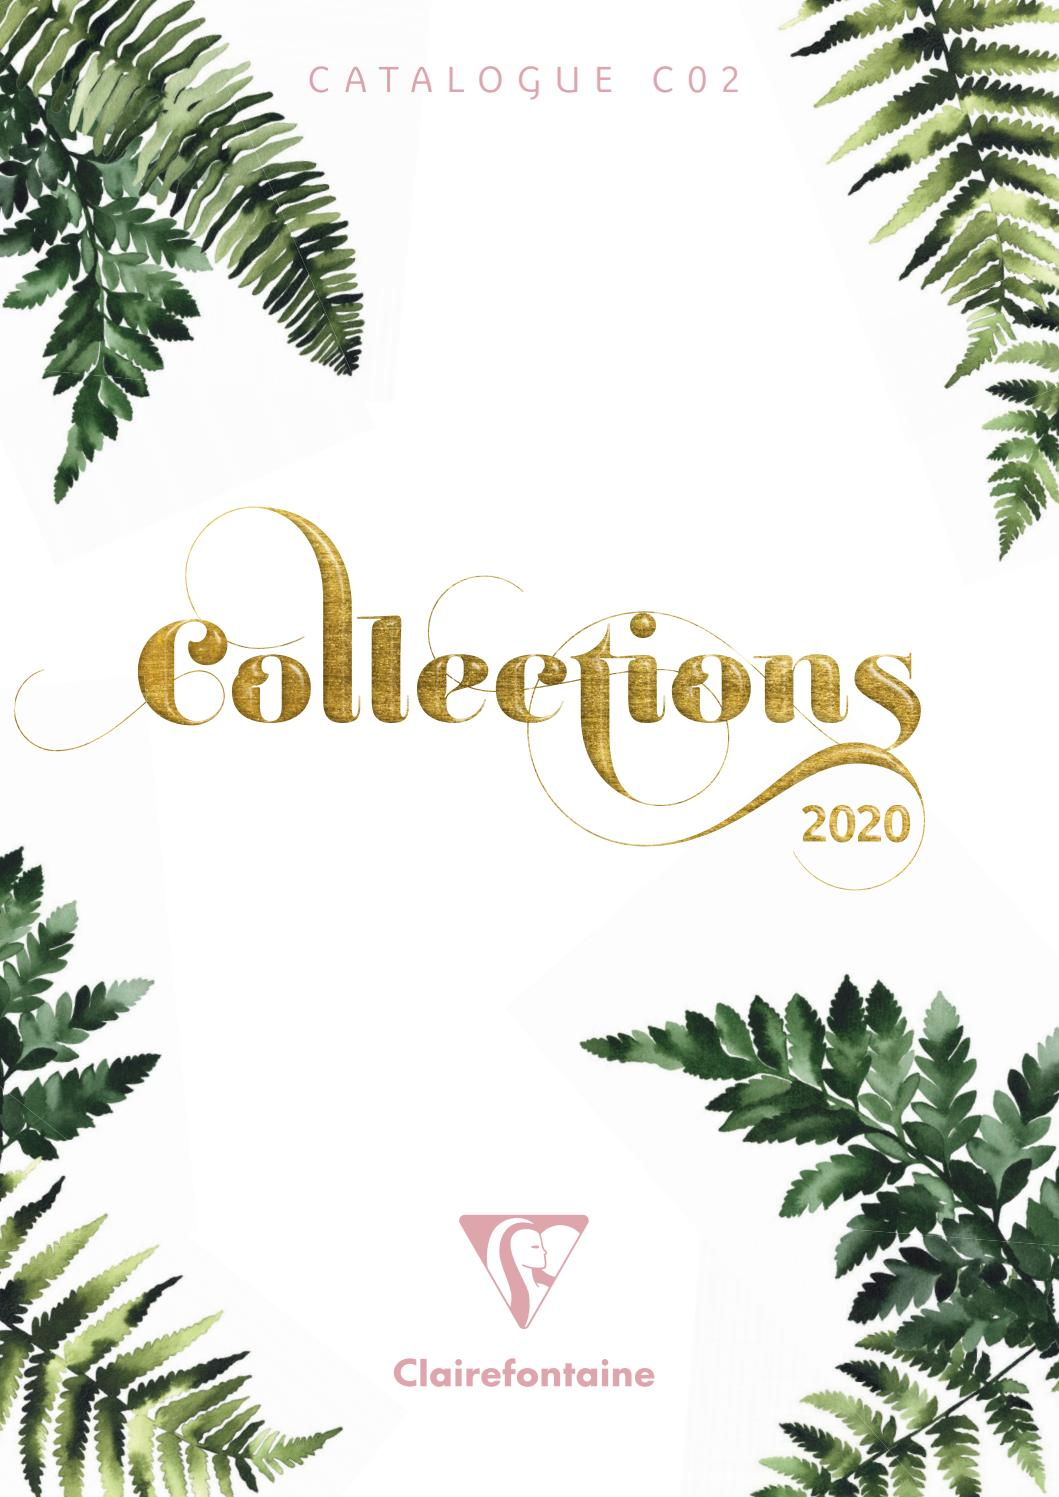 Clairefontaine Stationery Collections 2020 Catalogue By Exaclair Limited Issuu